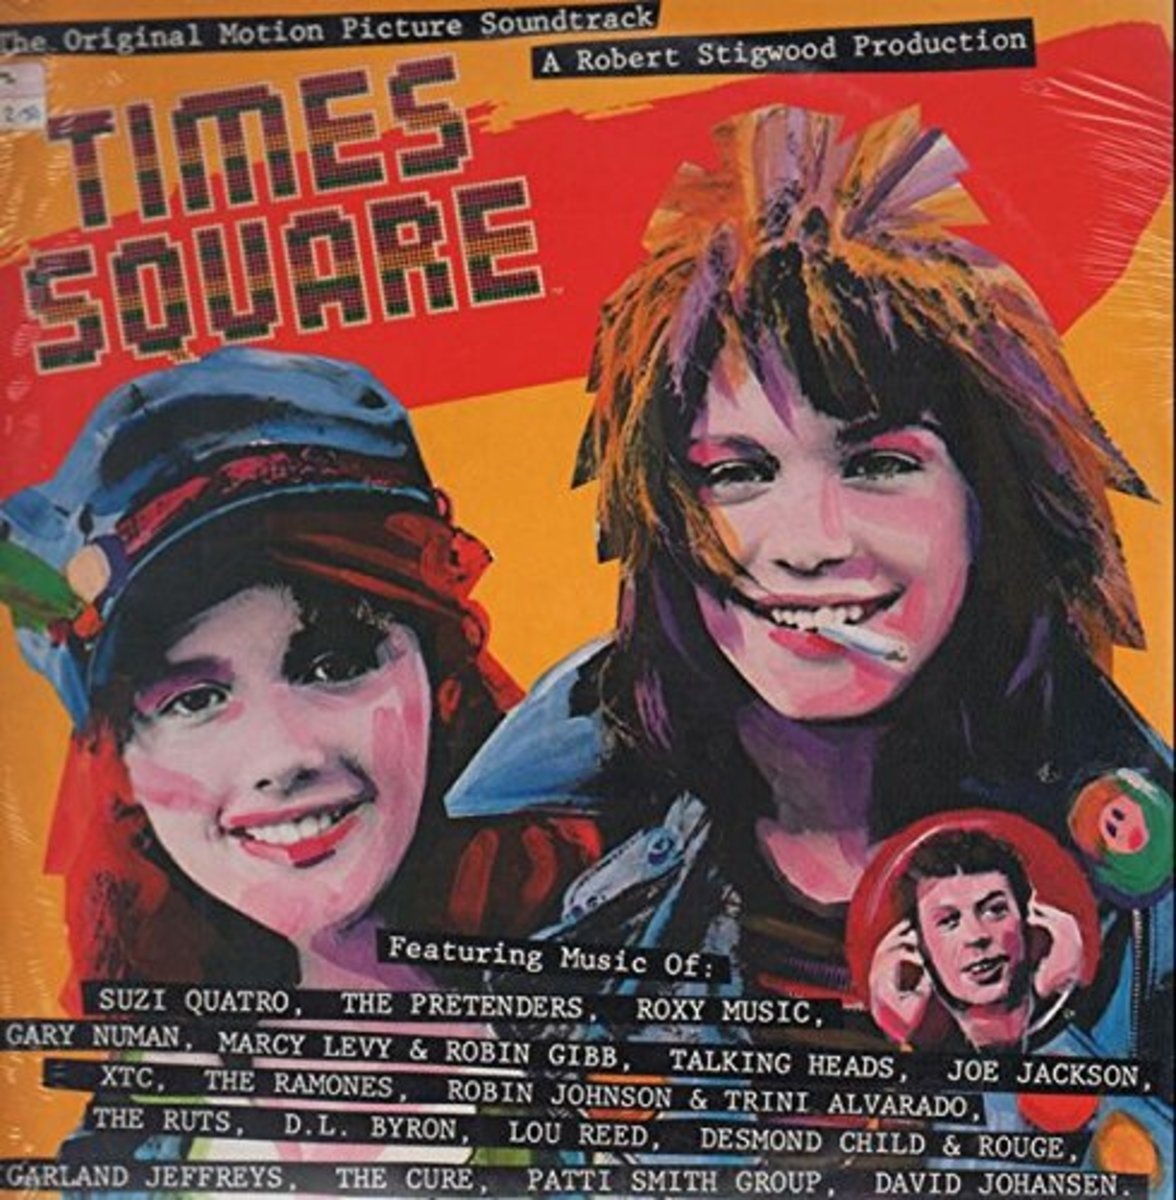 The soundtrack album for Times Square